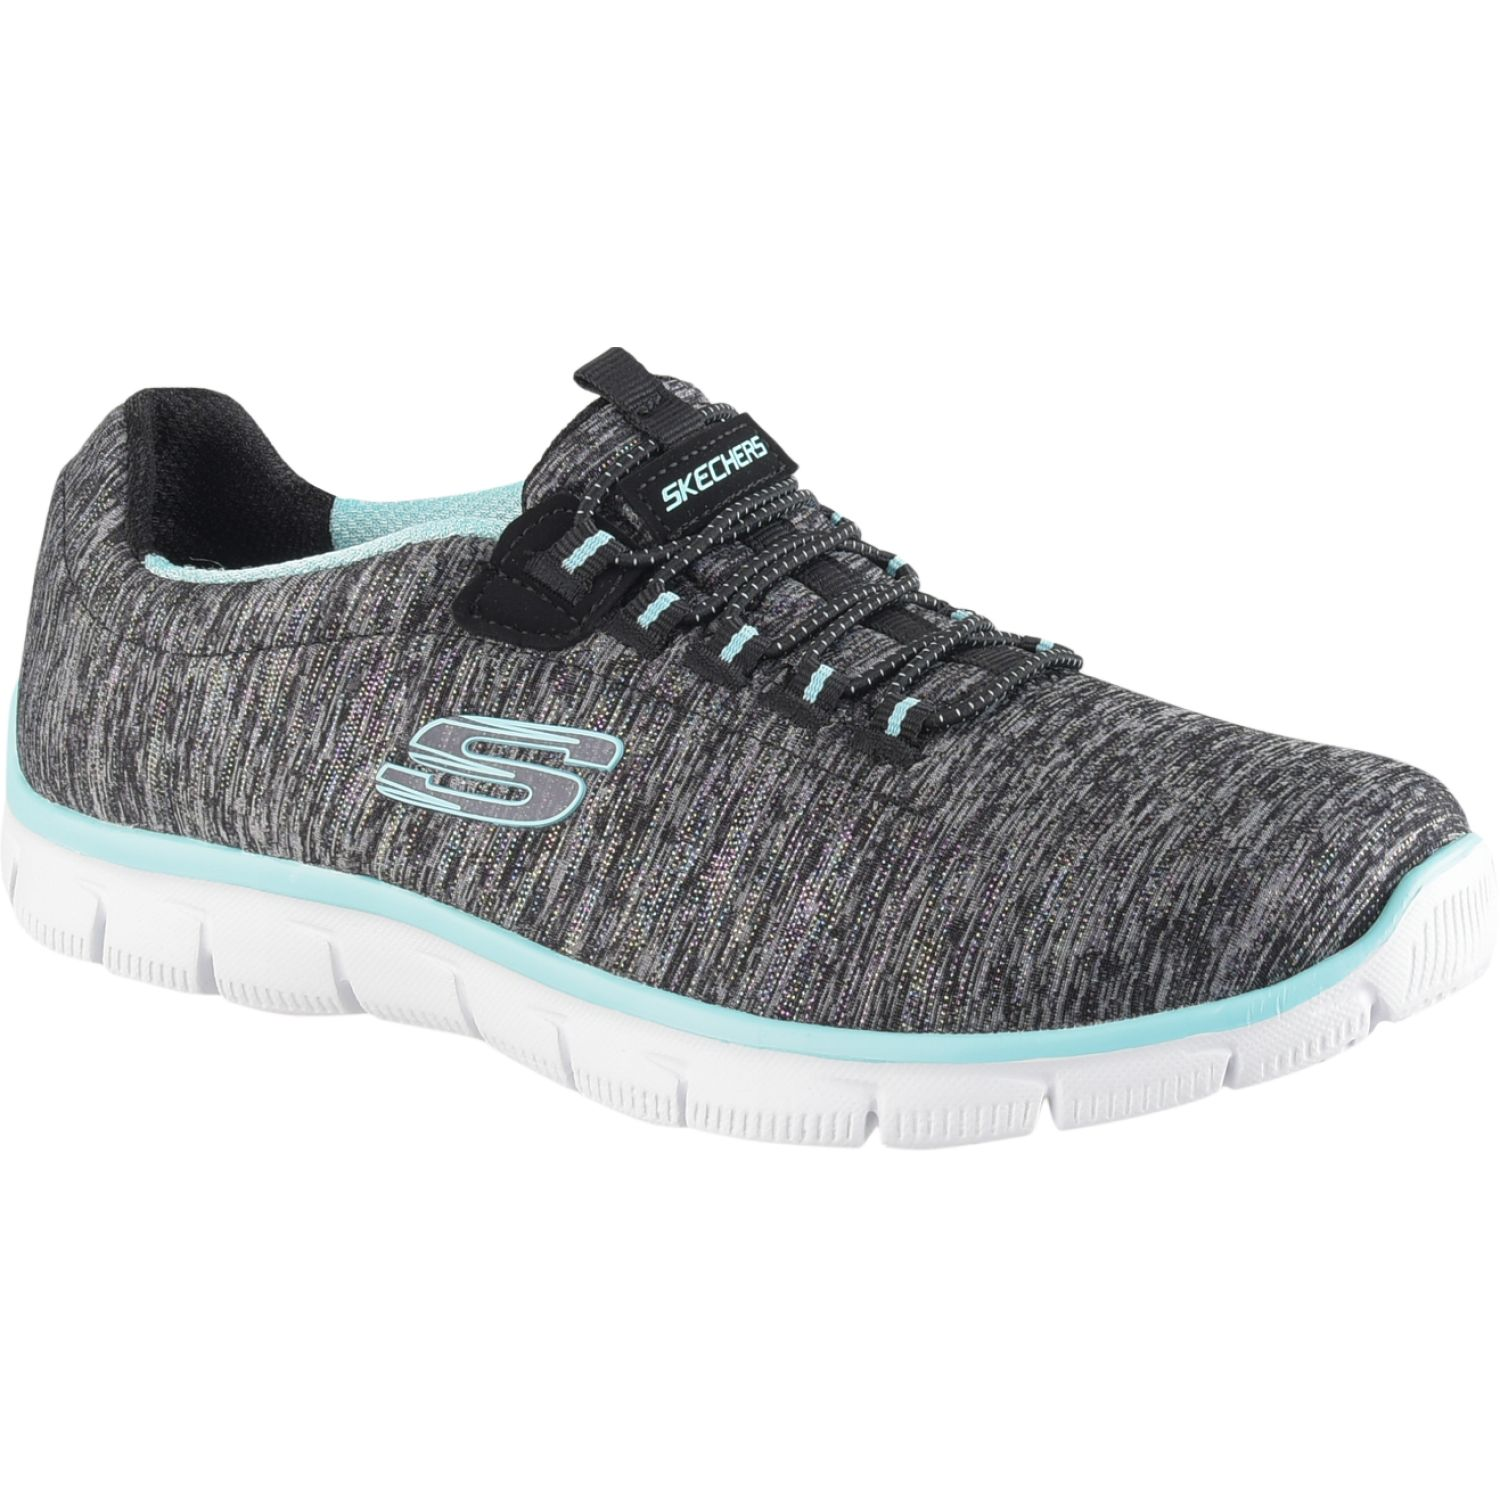 Skechers Empire - See Ya Negro / celeste Walking